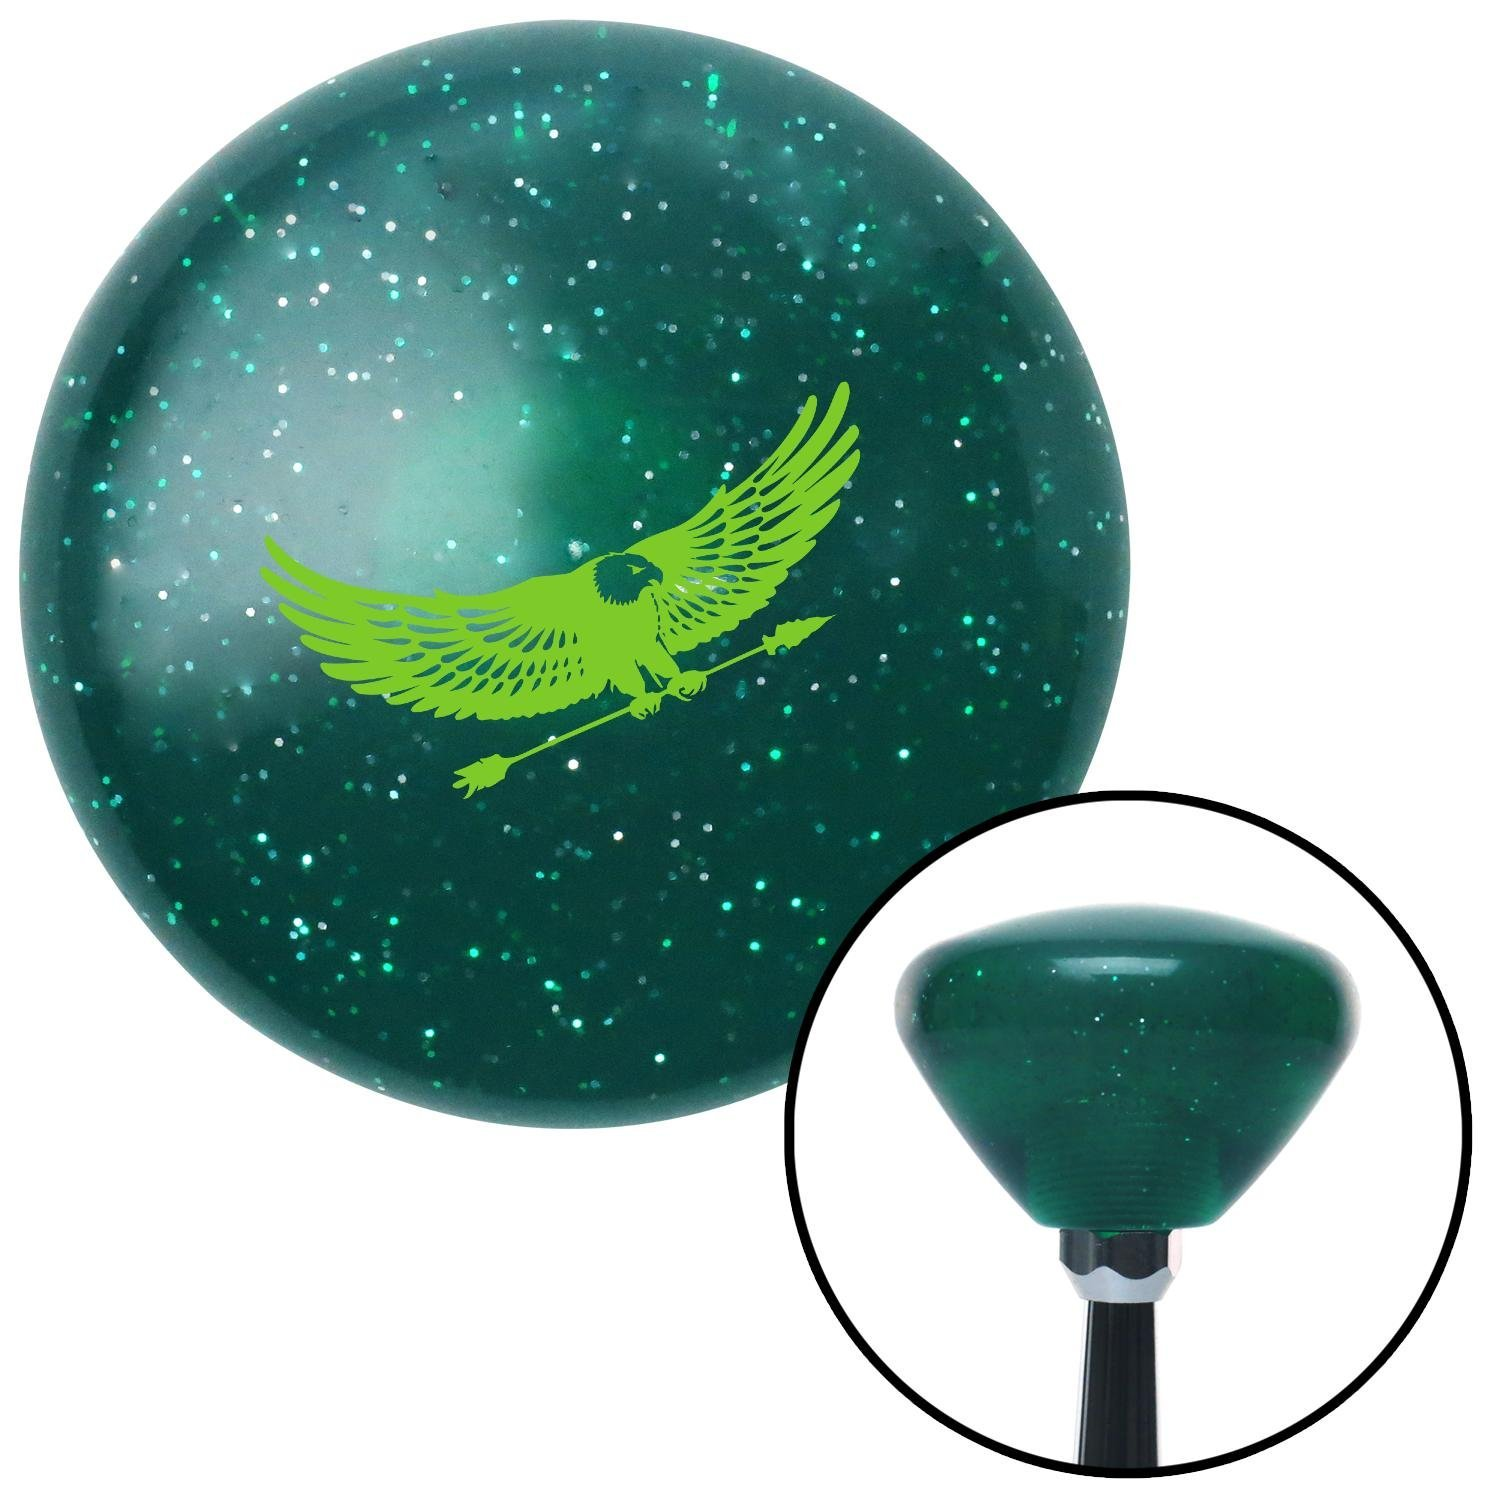 Green Eagle with Arrow American Shifter 207514 Green Retro Metal Flake Shift Knob with M16 x 1.5 Insert